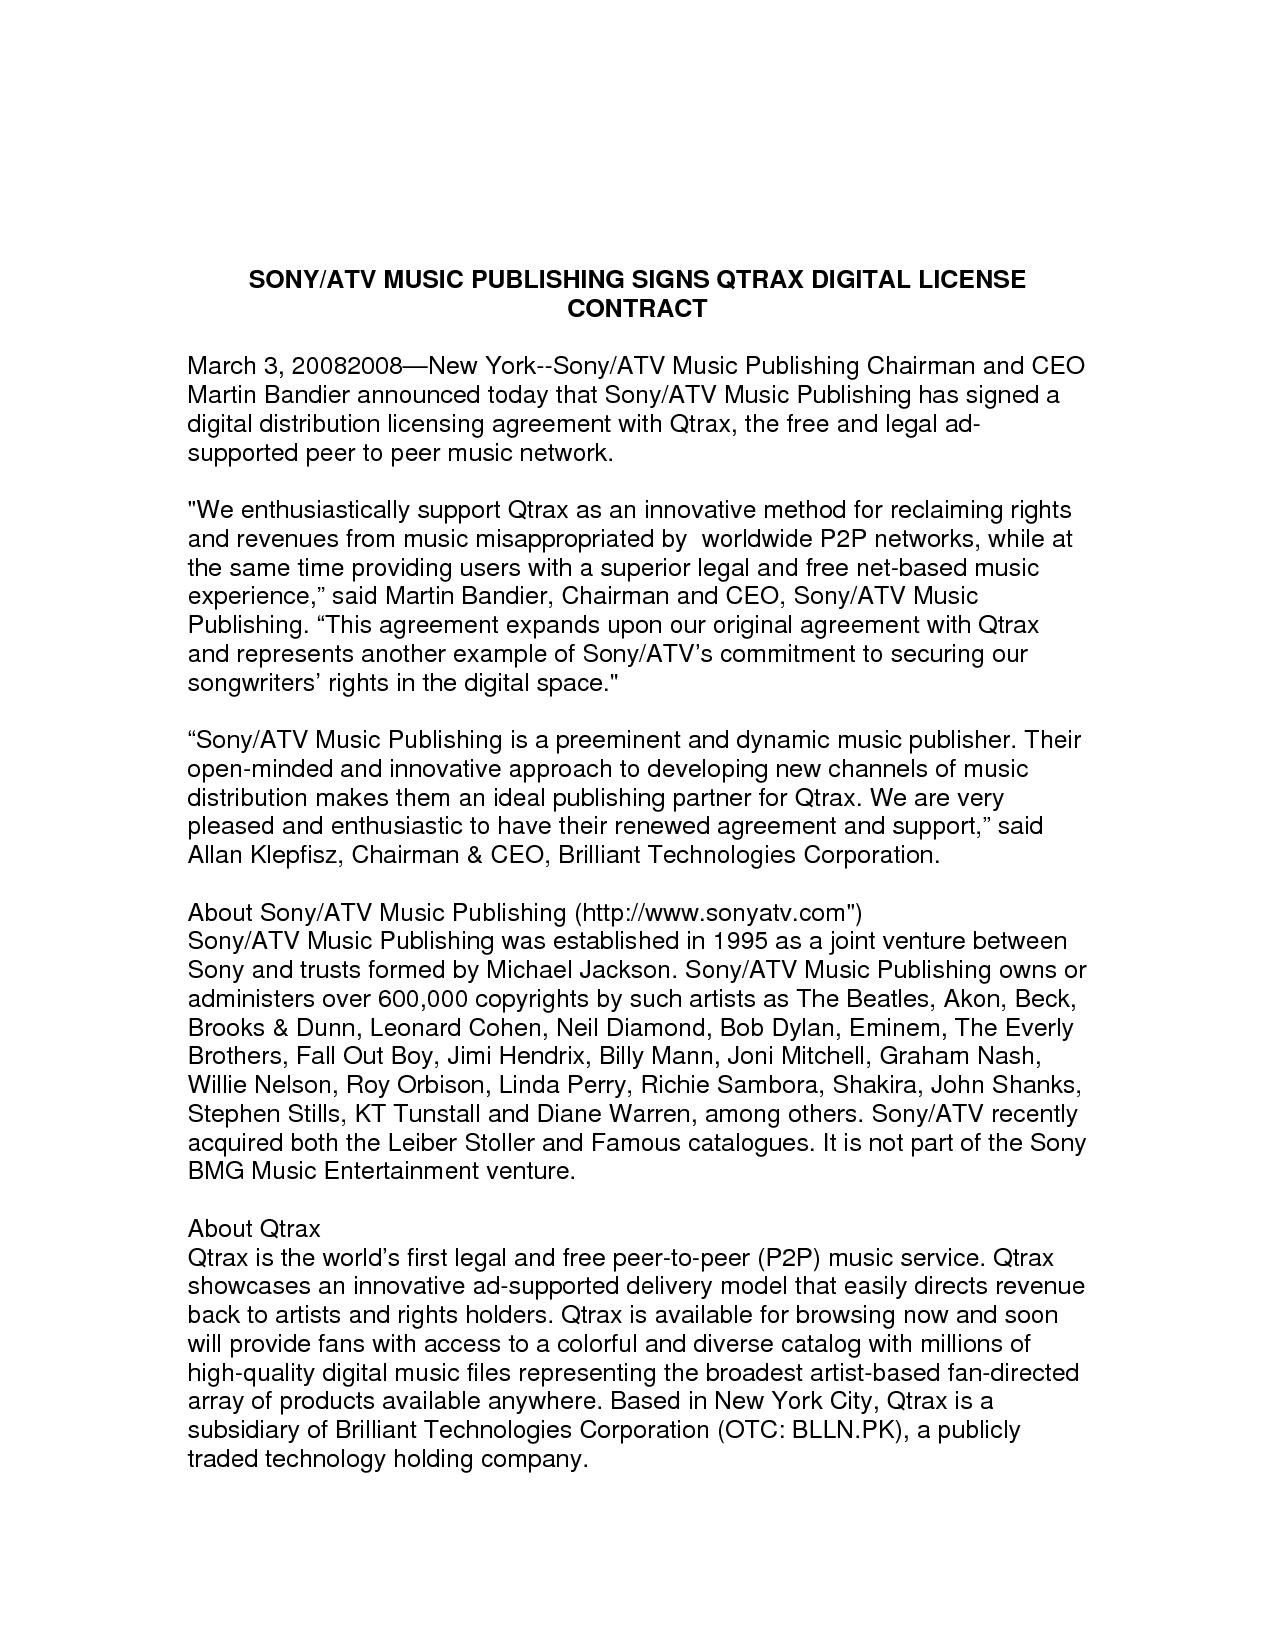 SONY ATV MUSIC PUBLISHING SIGNS QTRAX DIGITAL LICENSE CONTRACT – Music Agreement Contract